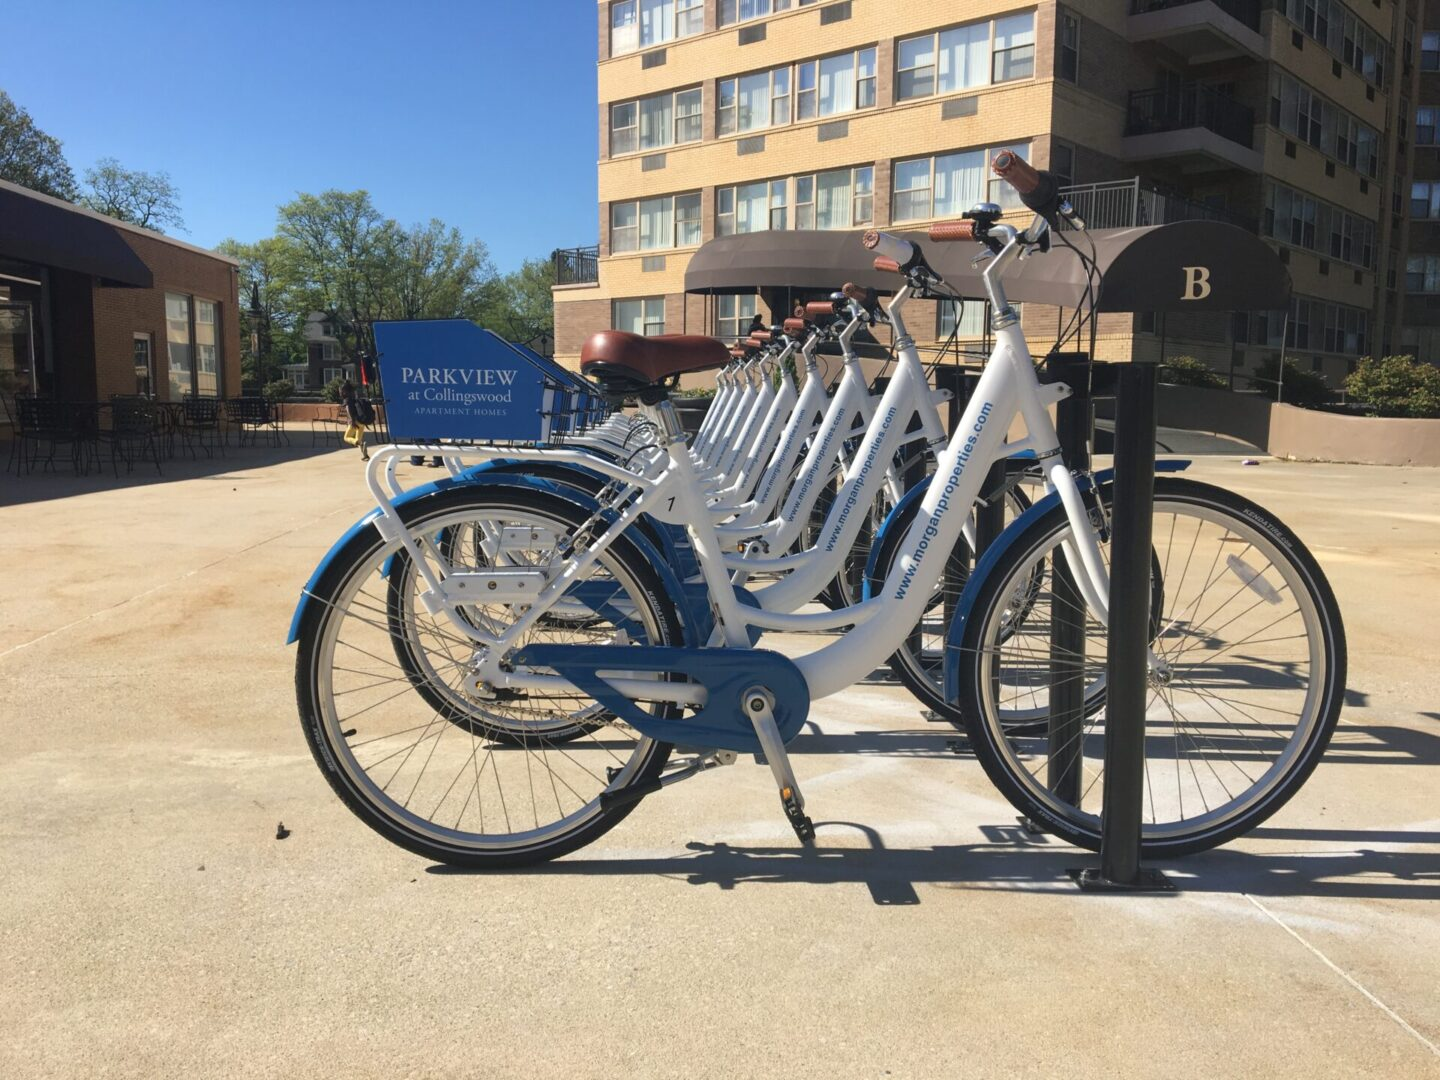 Parkview-branded bicycles